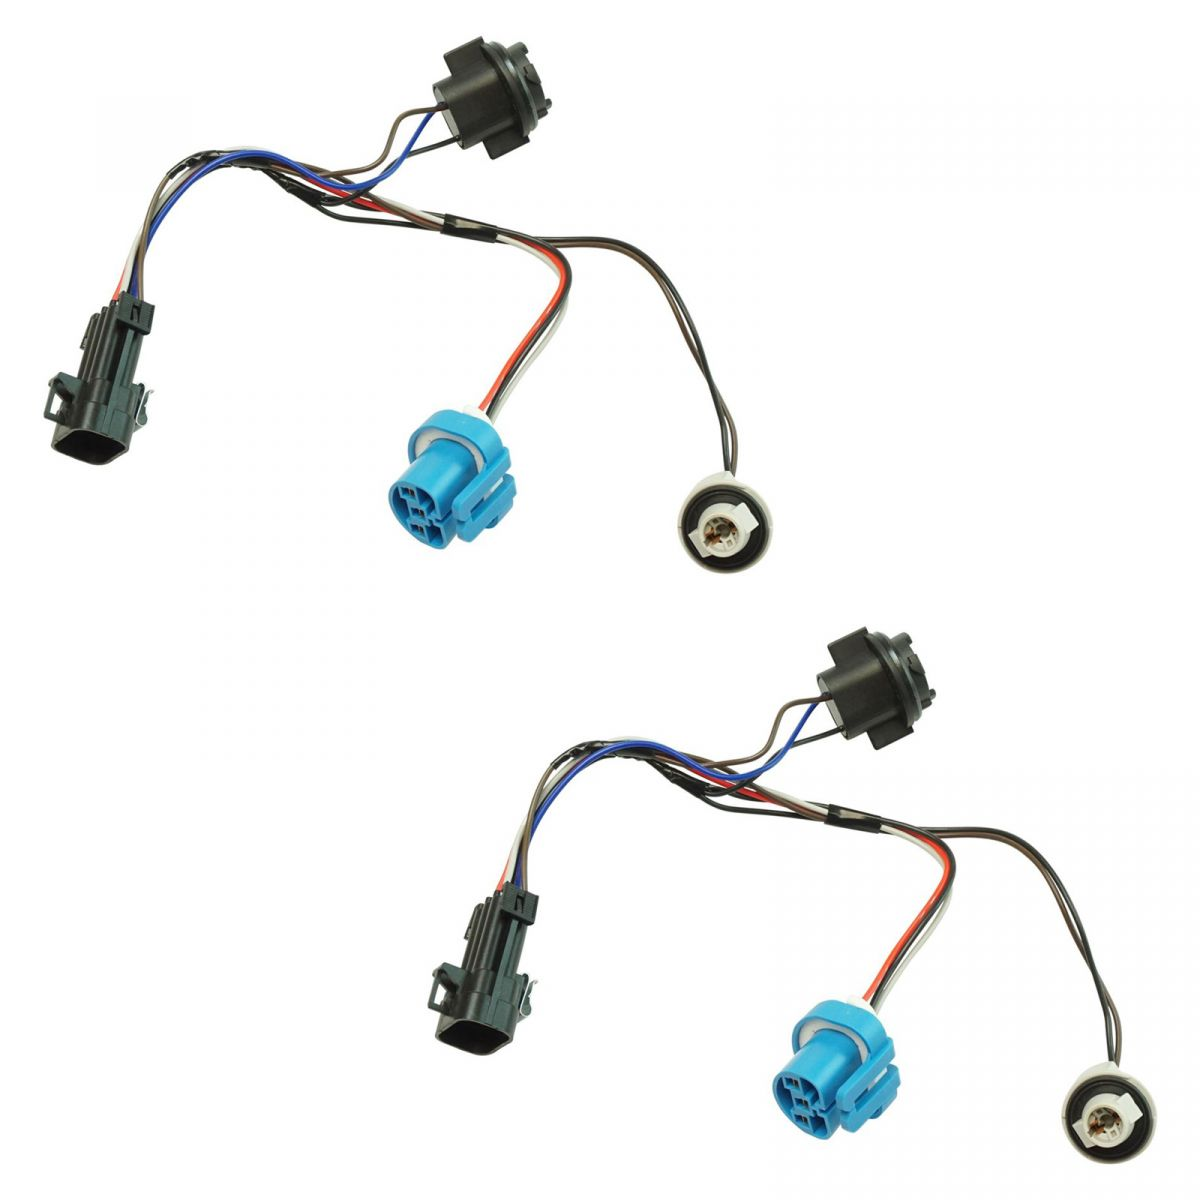 cobalt wiring harness dorman headlight wiring harness side pair for chevy cobalt pontiac  dorman headlight wiring harness side